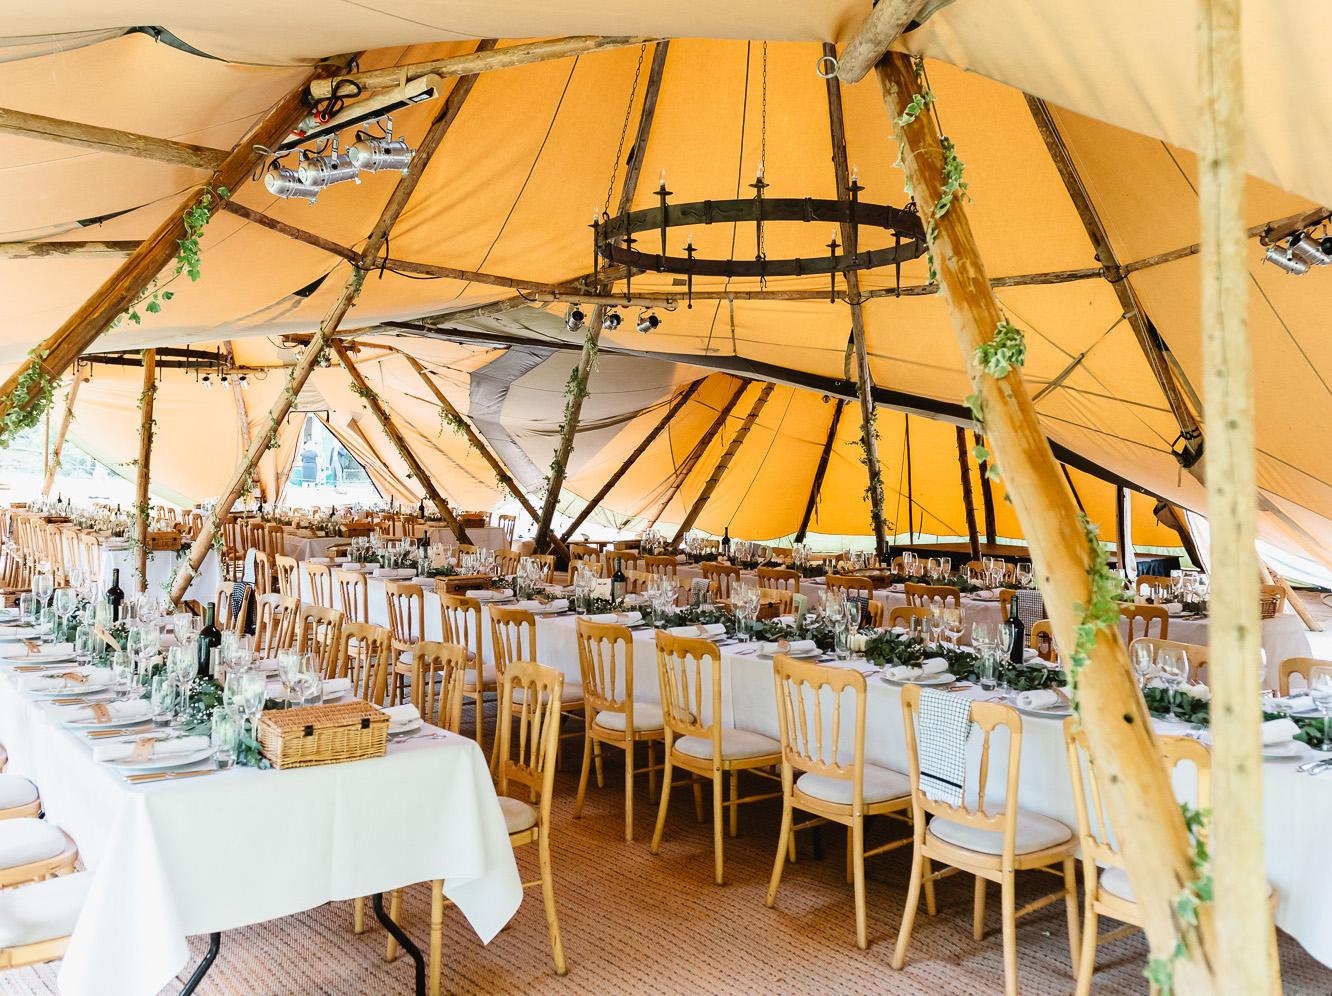 Juniper runners on long tables with white tablecloths inside a tipi